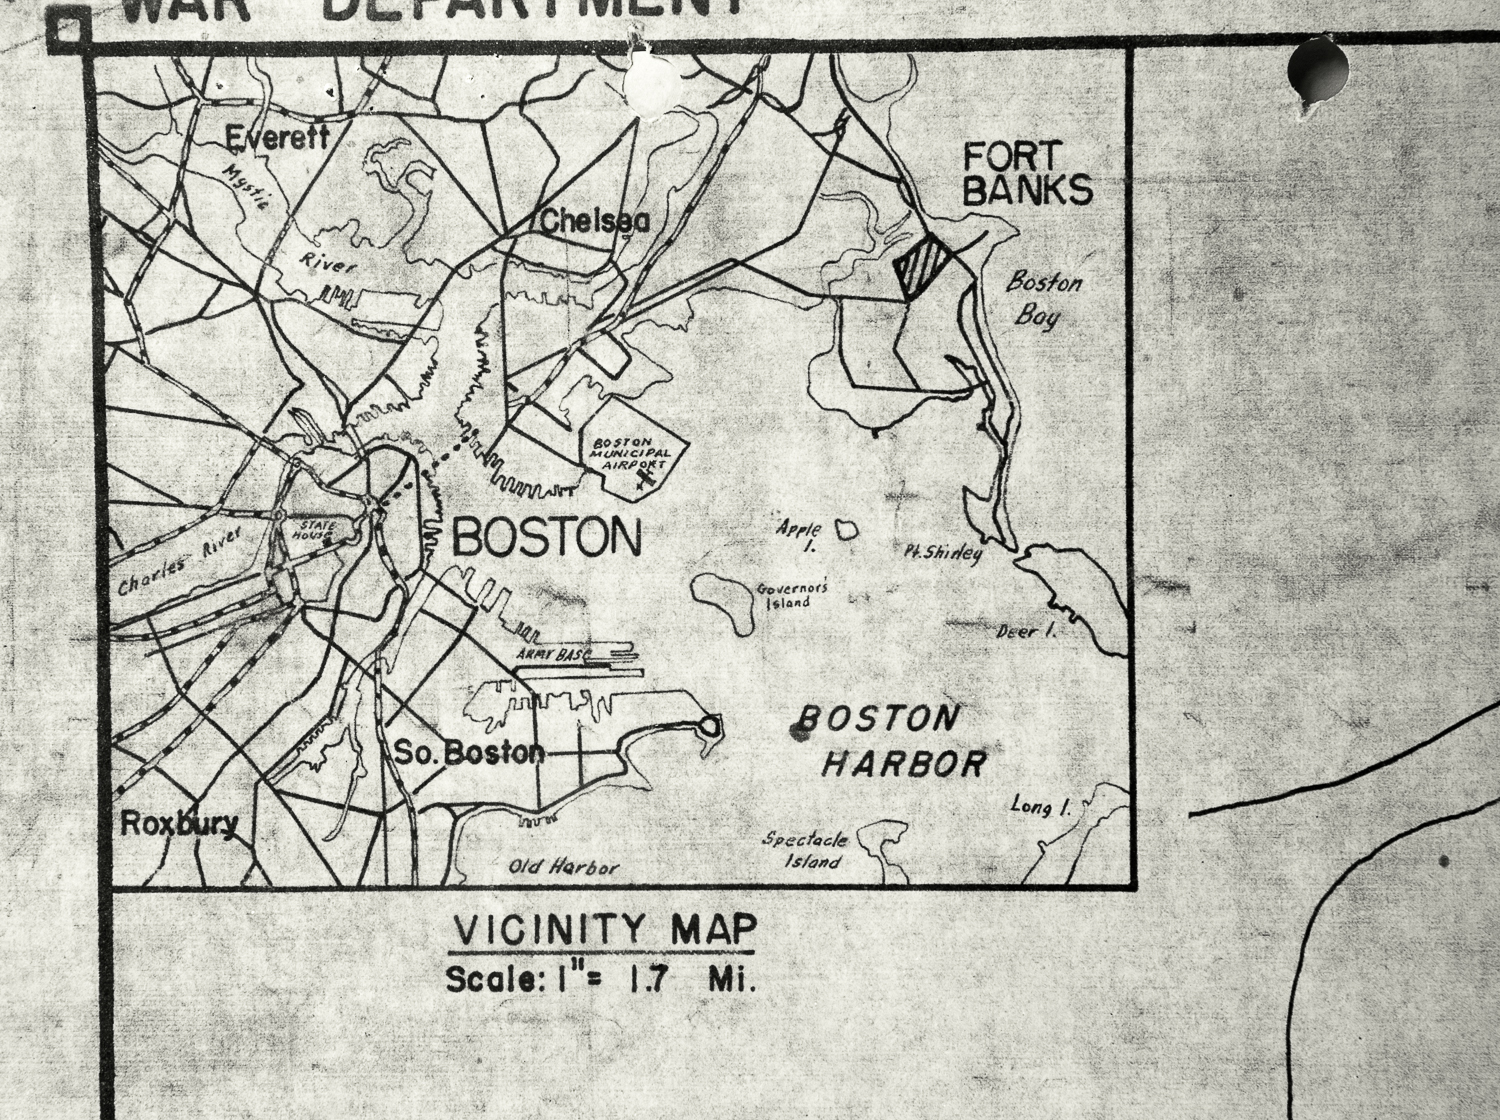 """Map Detail, Boston Harbor. """"A map detail depicting Boston Harbor and positioning Fort Banks in Winthrop in relationship to the city of Boston."""" c. 1970; Records of the Public Building Service 1932-1978, RG 121, NARA Boston."""